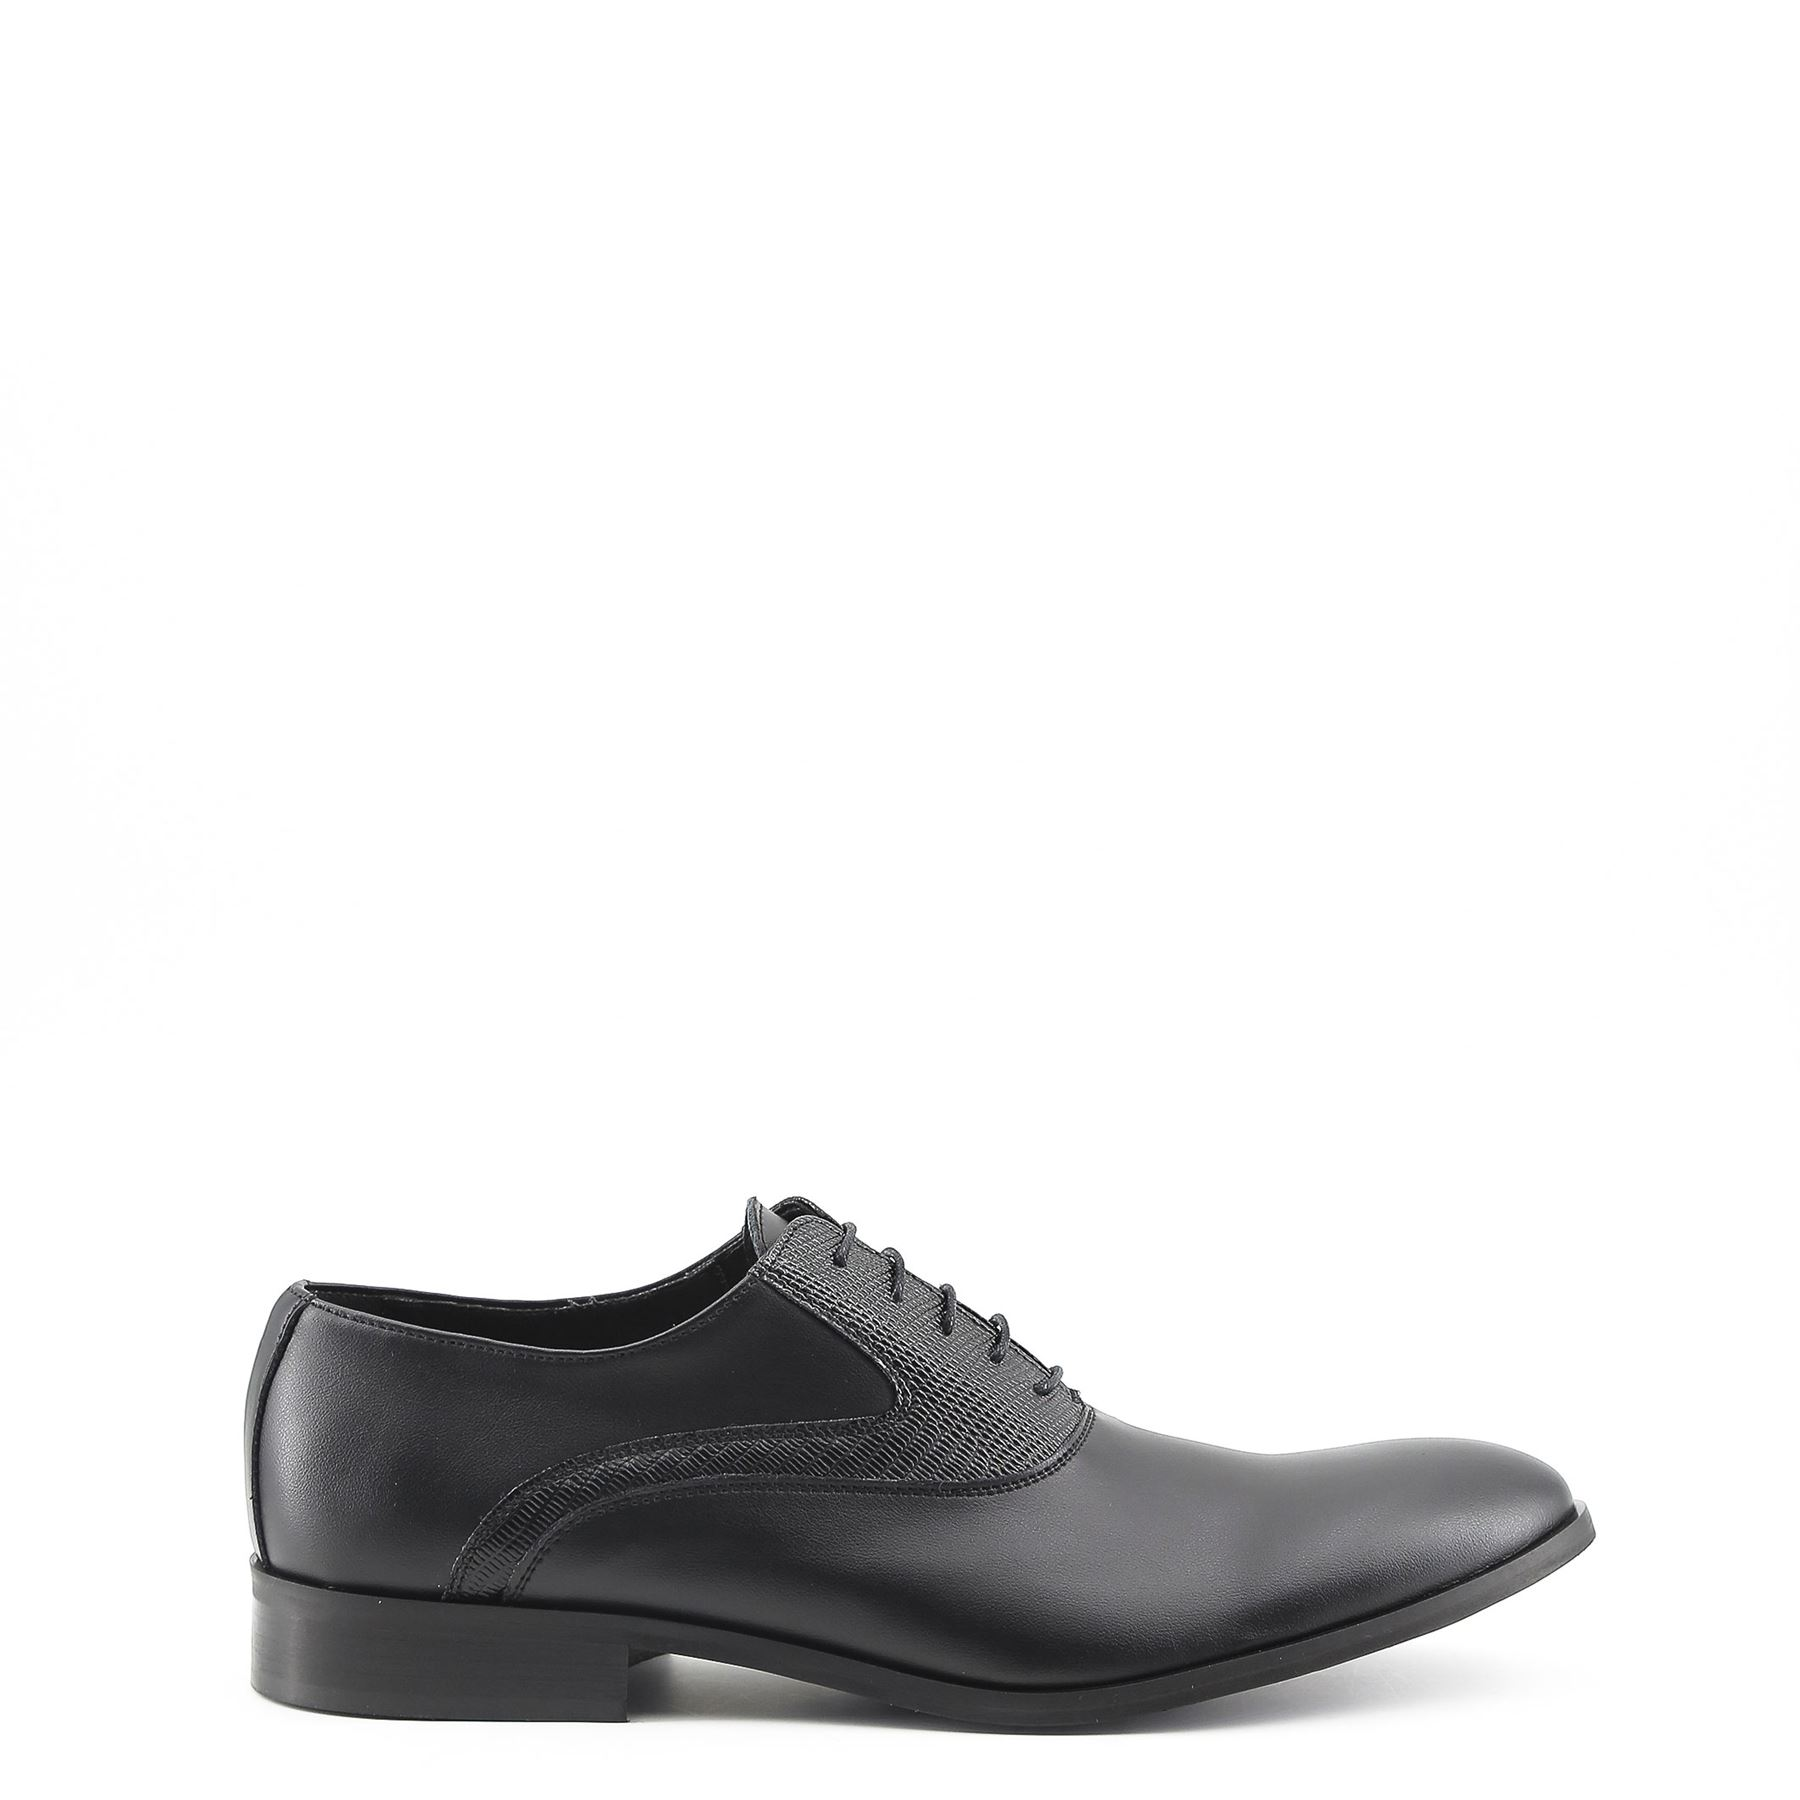 7785edd05 Details about Made In Italia JOACHIM Men s Leather Oxford Lace Up Dress  Shoes Black